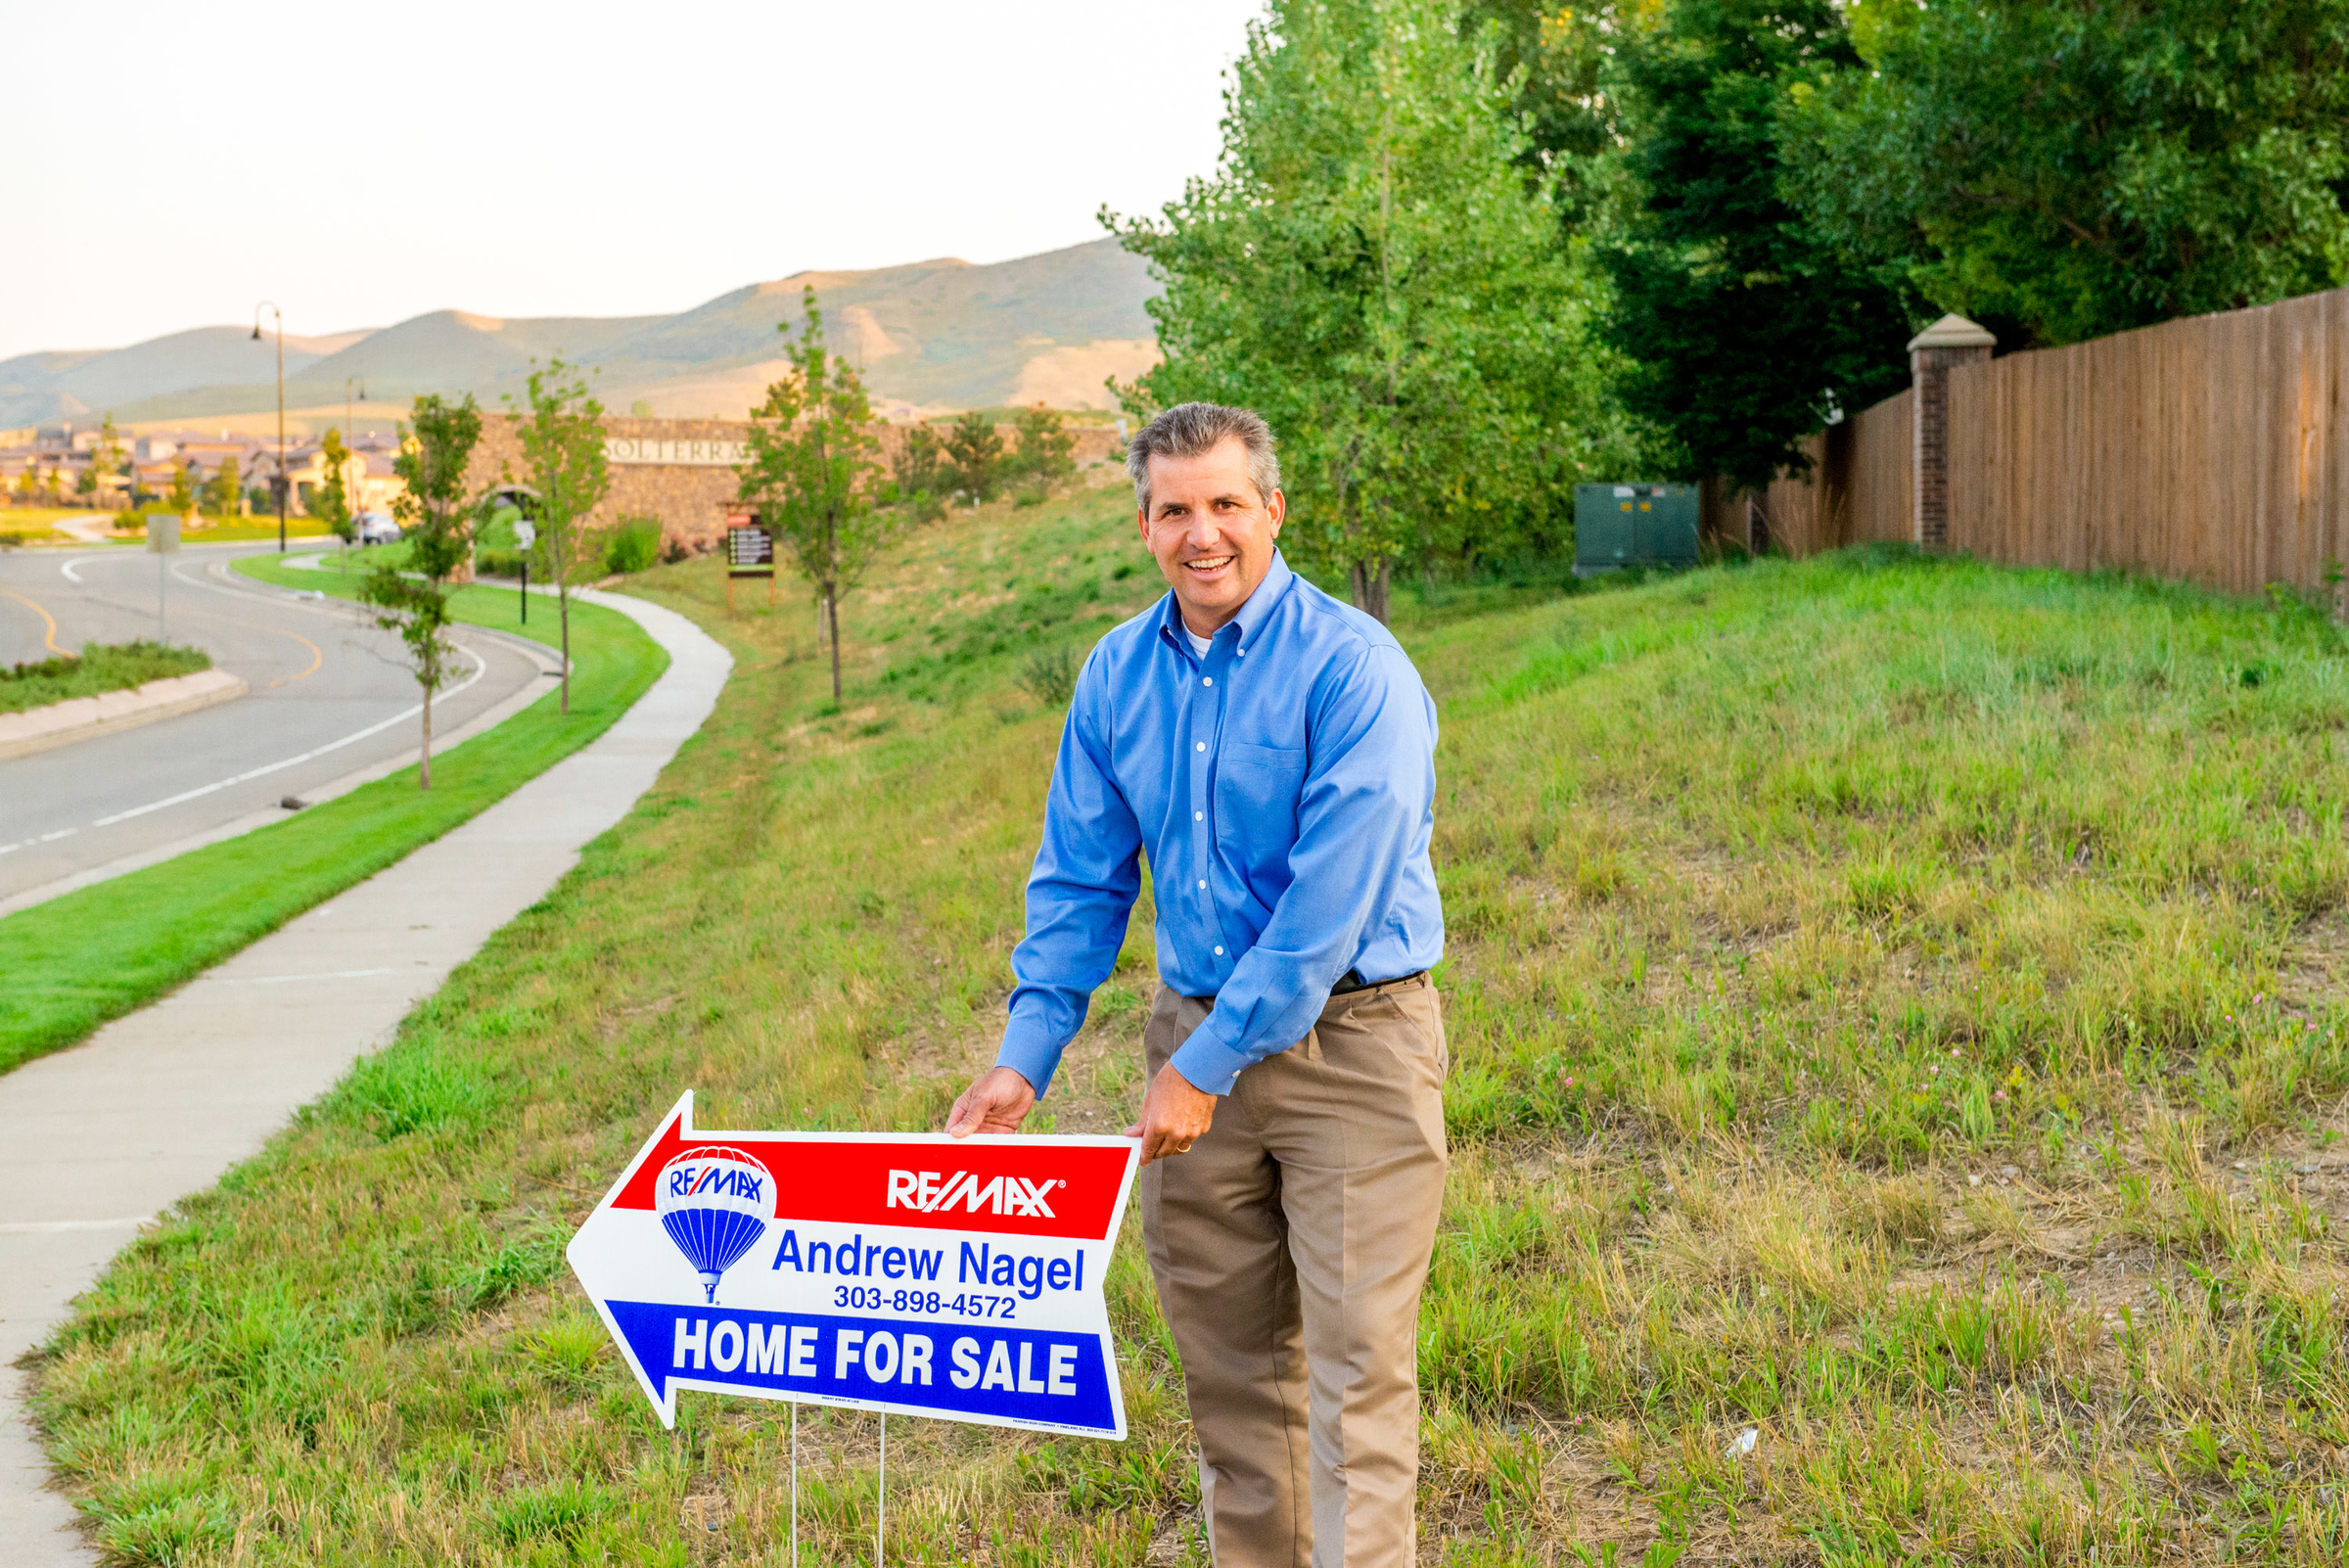 Andrew Nagel putting out directional signs in Solterra